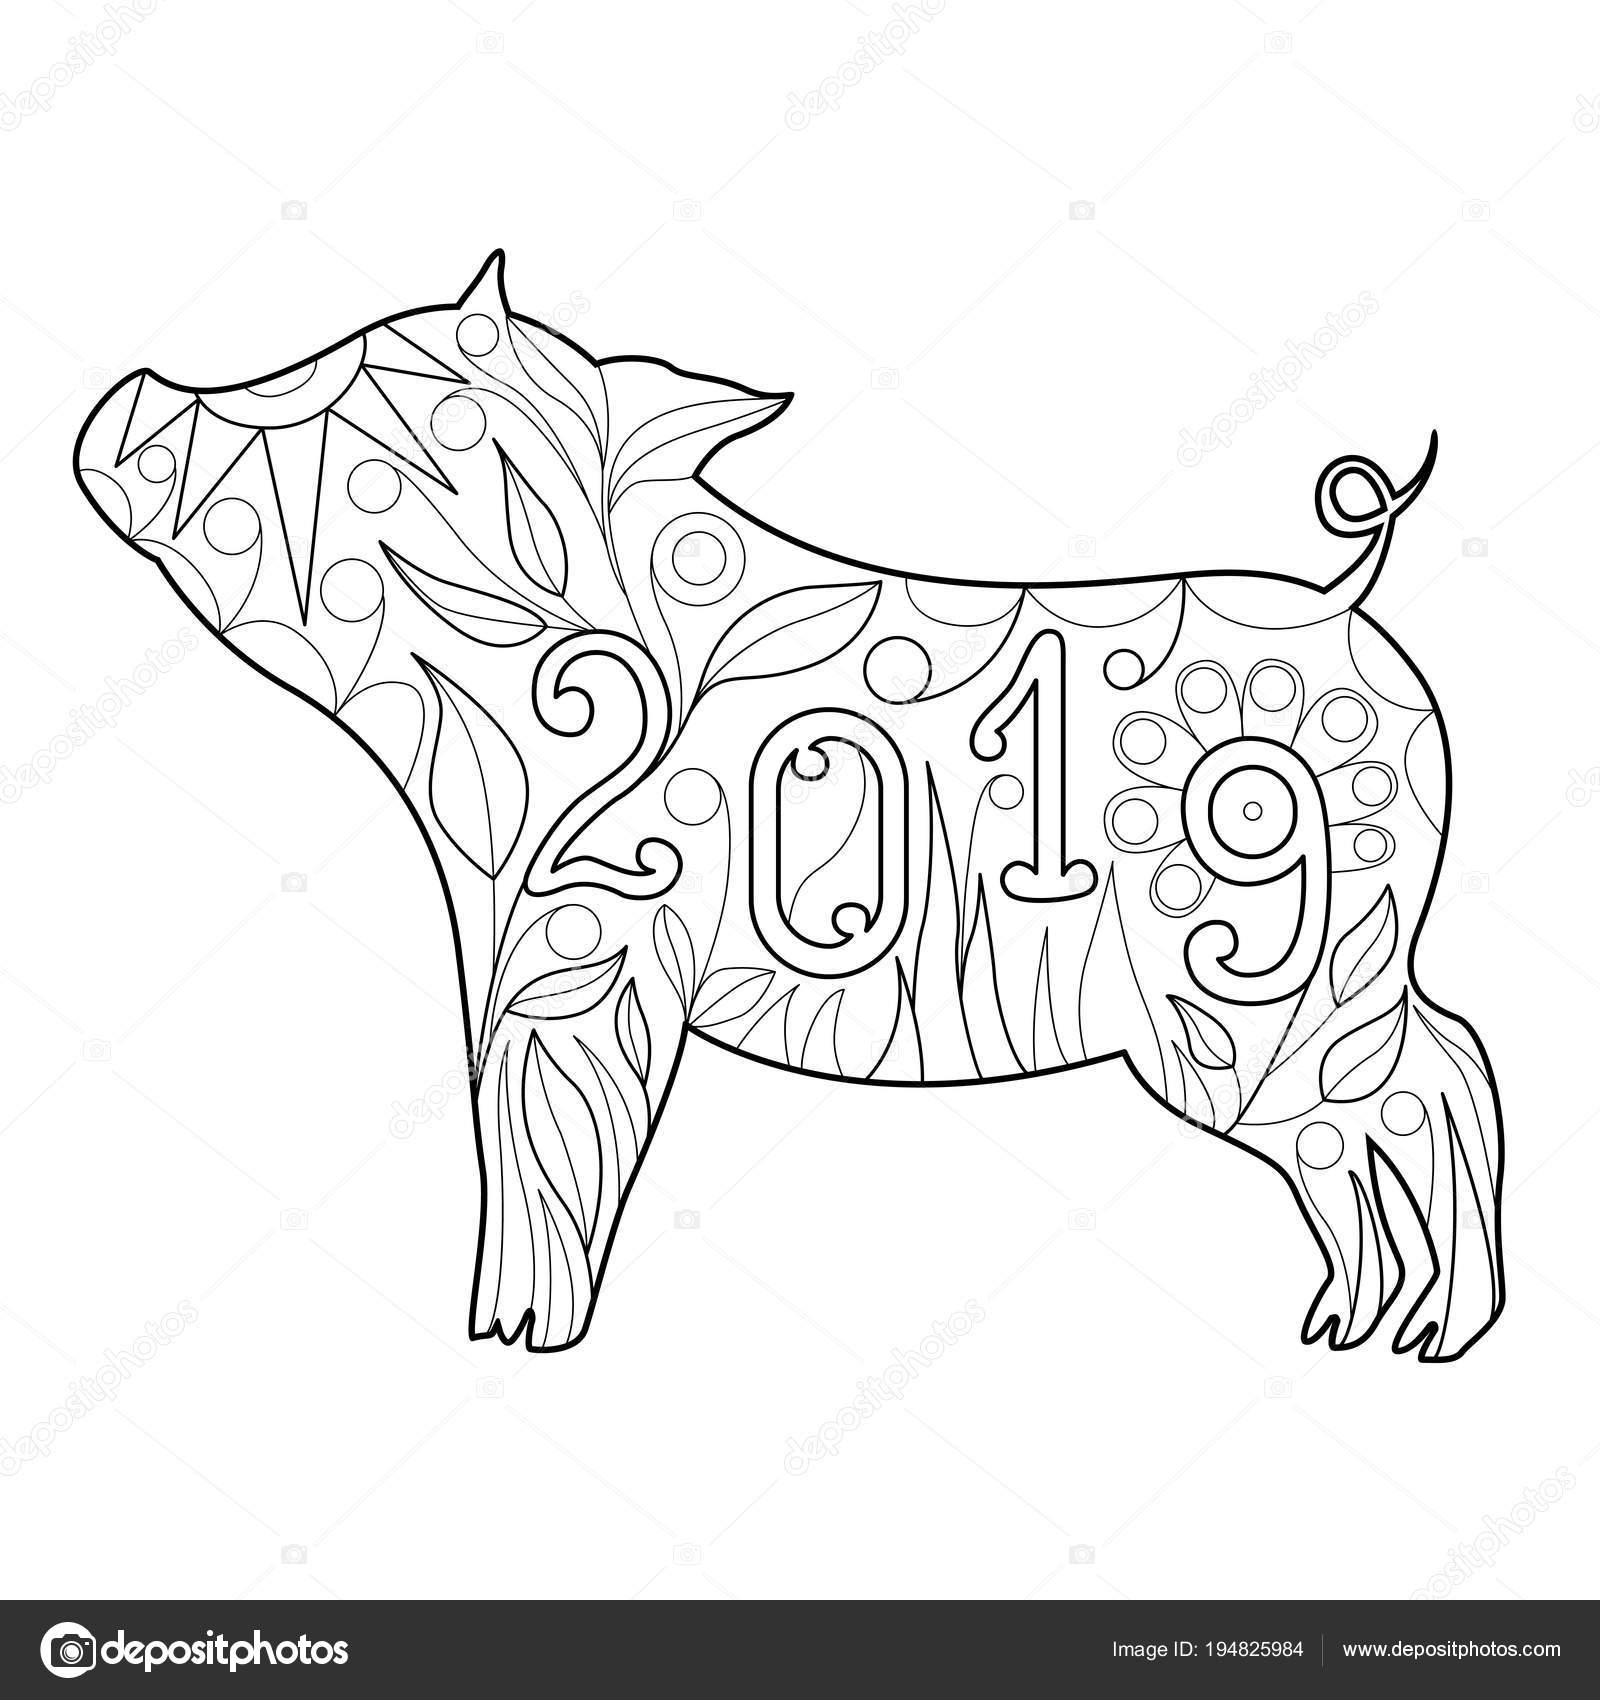 Year of the pig 2019 coloring pages ~ Hermoso doodle símbolo del cerdo año 2019 para colorear de ...